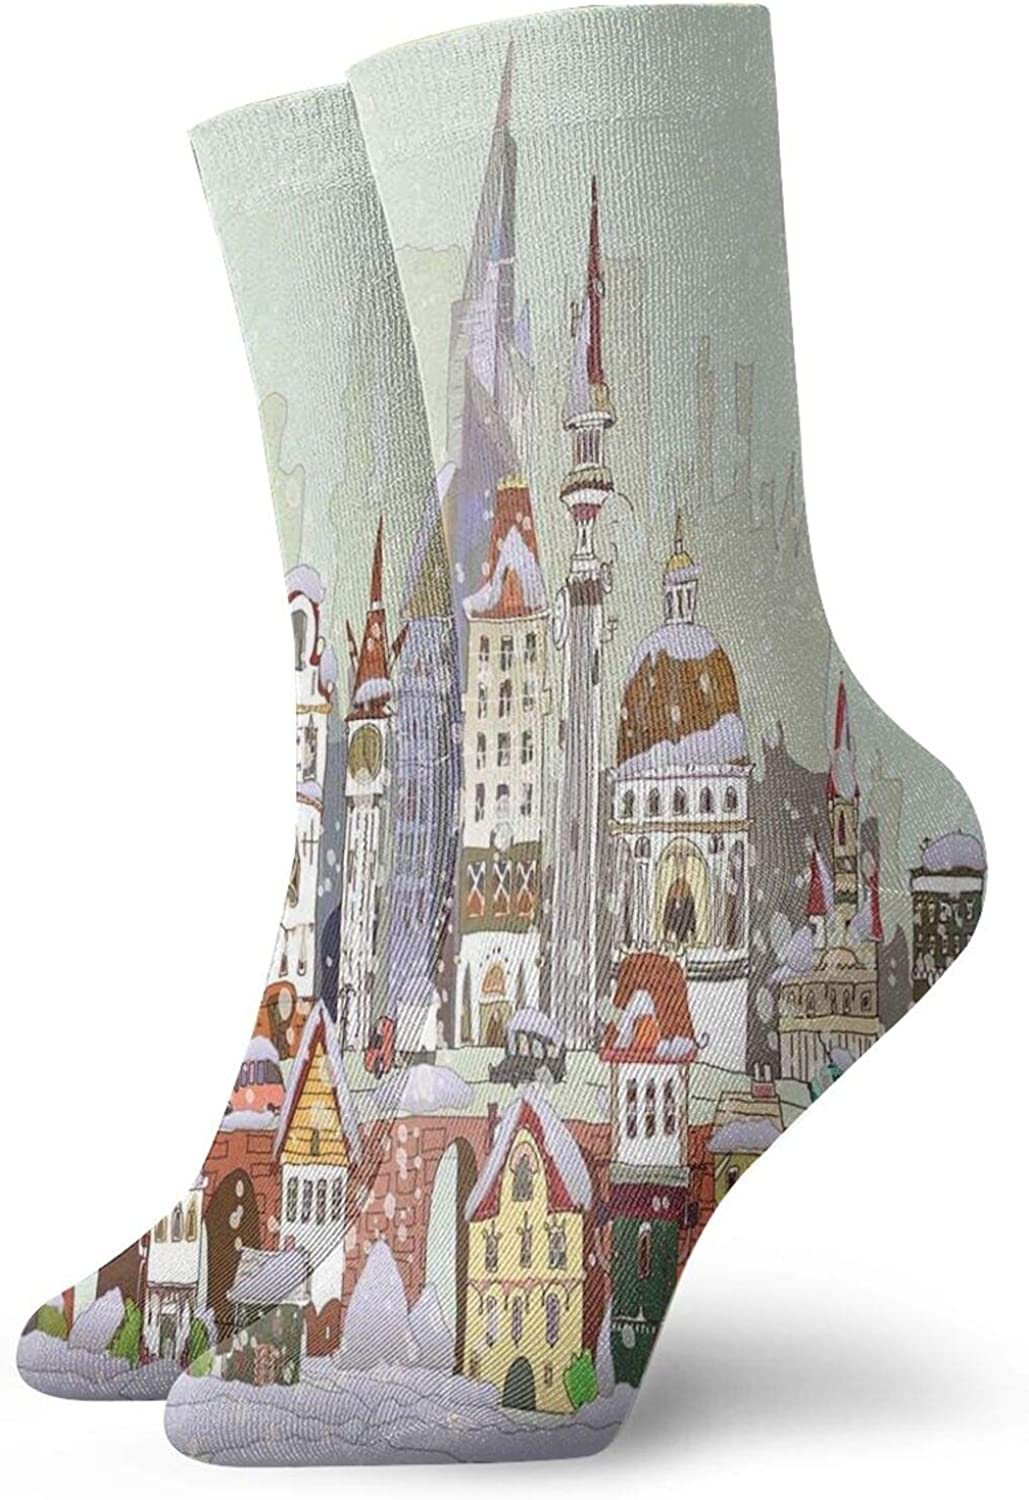 Men's and Women's Funny Casual Socks Noel In The City Xmas Background Yule Holiday Traditional Winter Scenery